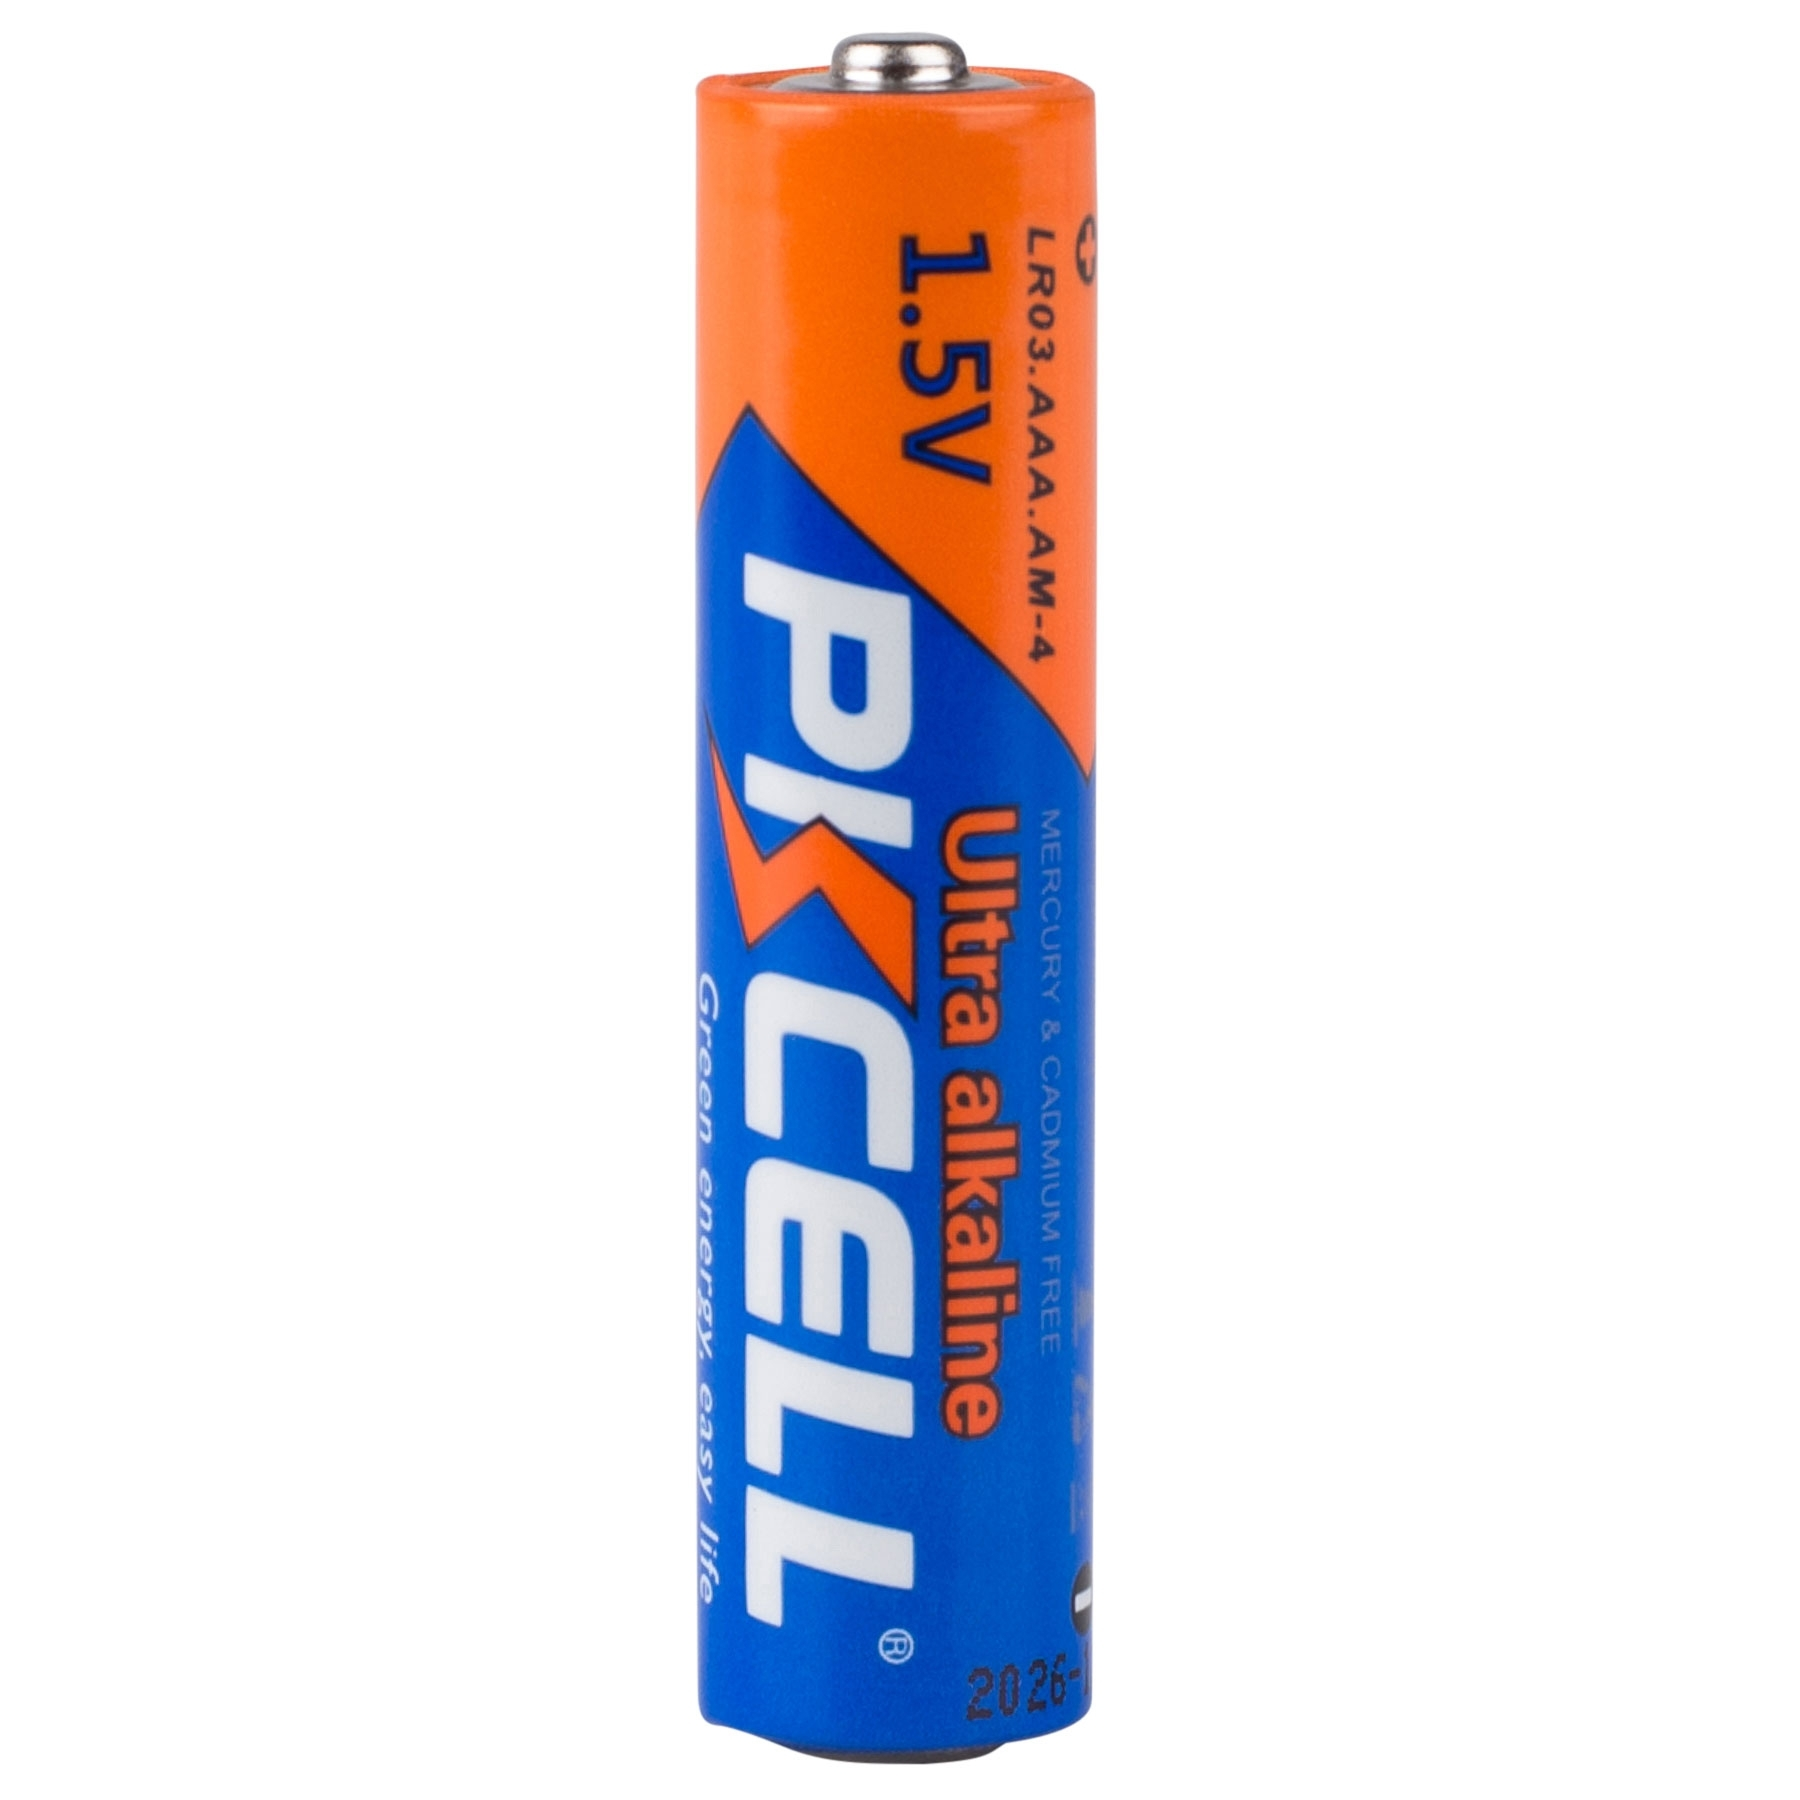 Pkcell Aaa Ultra Alkaline Battery 60-Pack